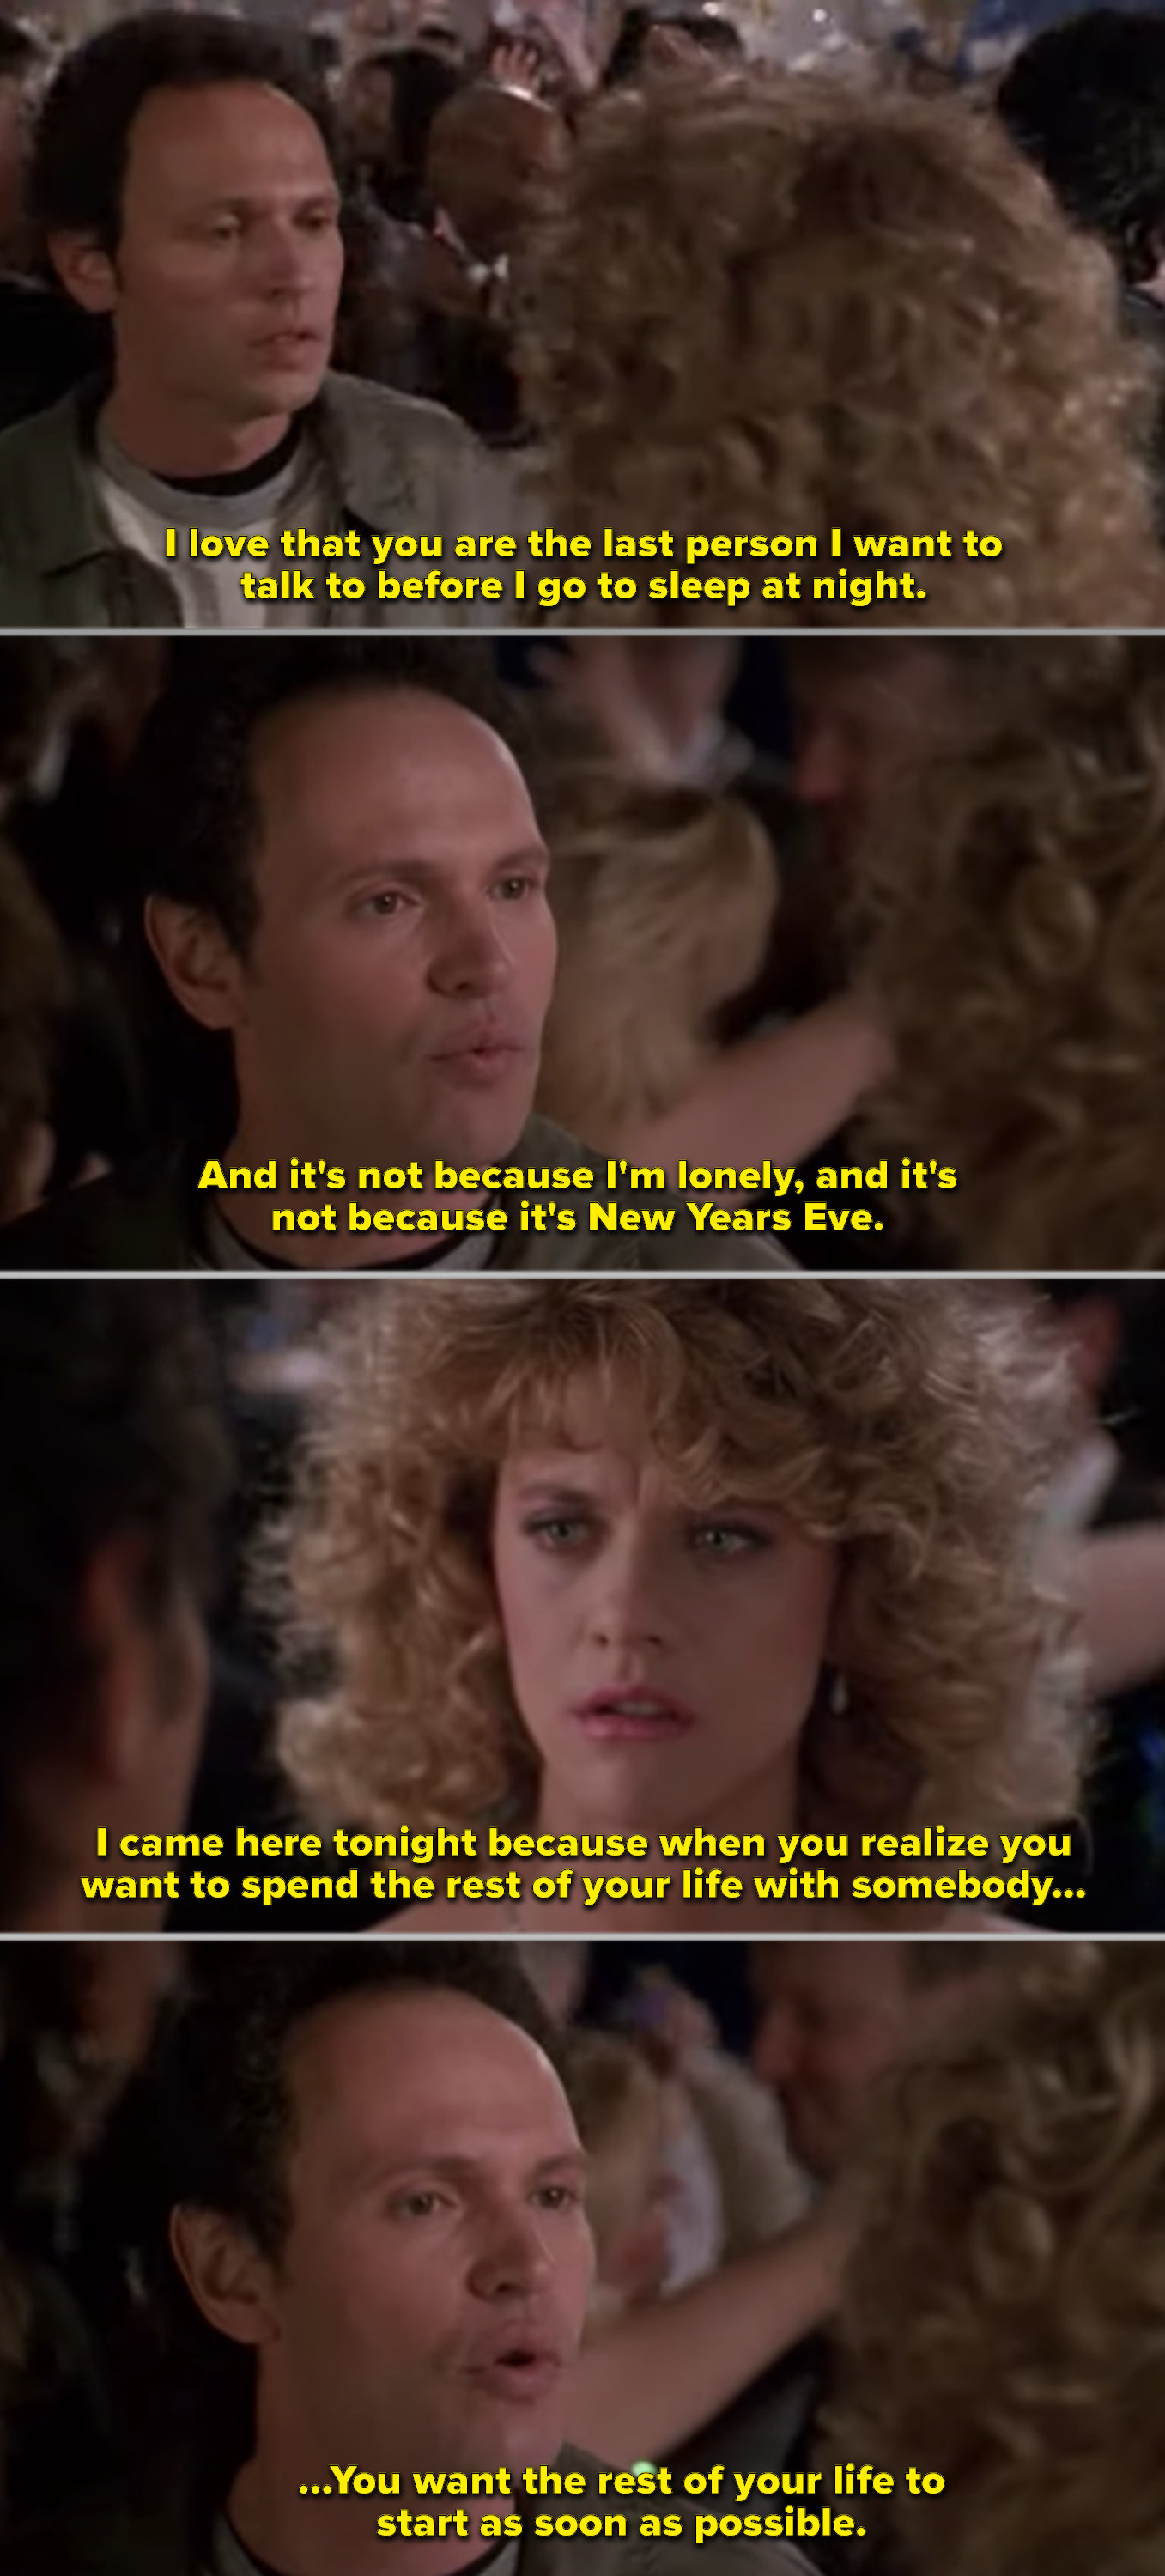 Harry and Sally at a New Year's Eve party